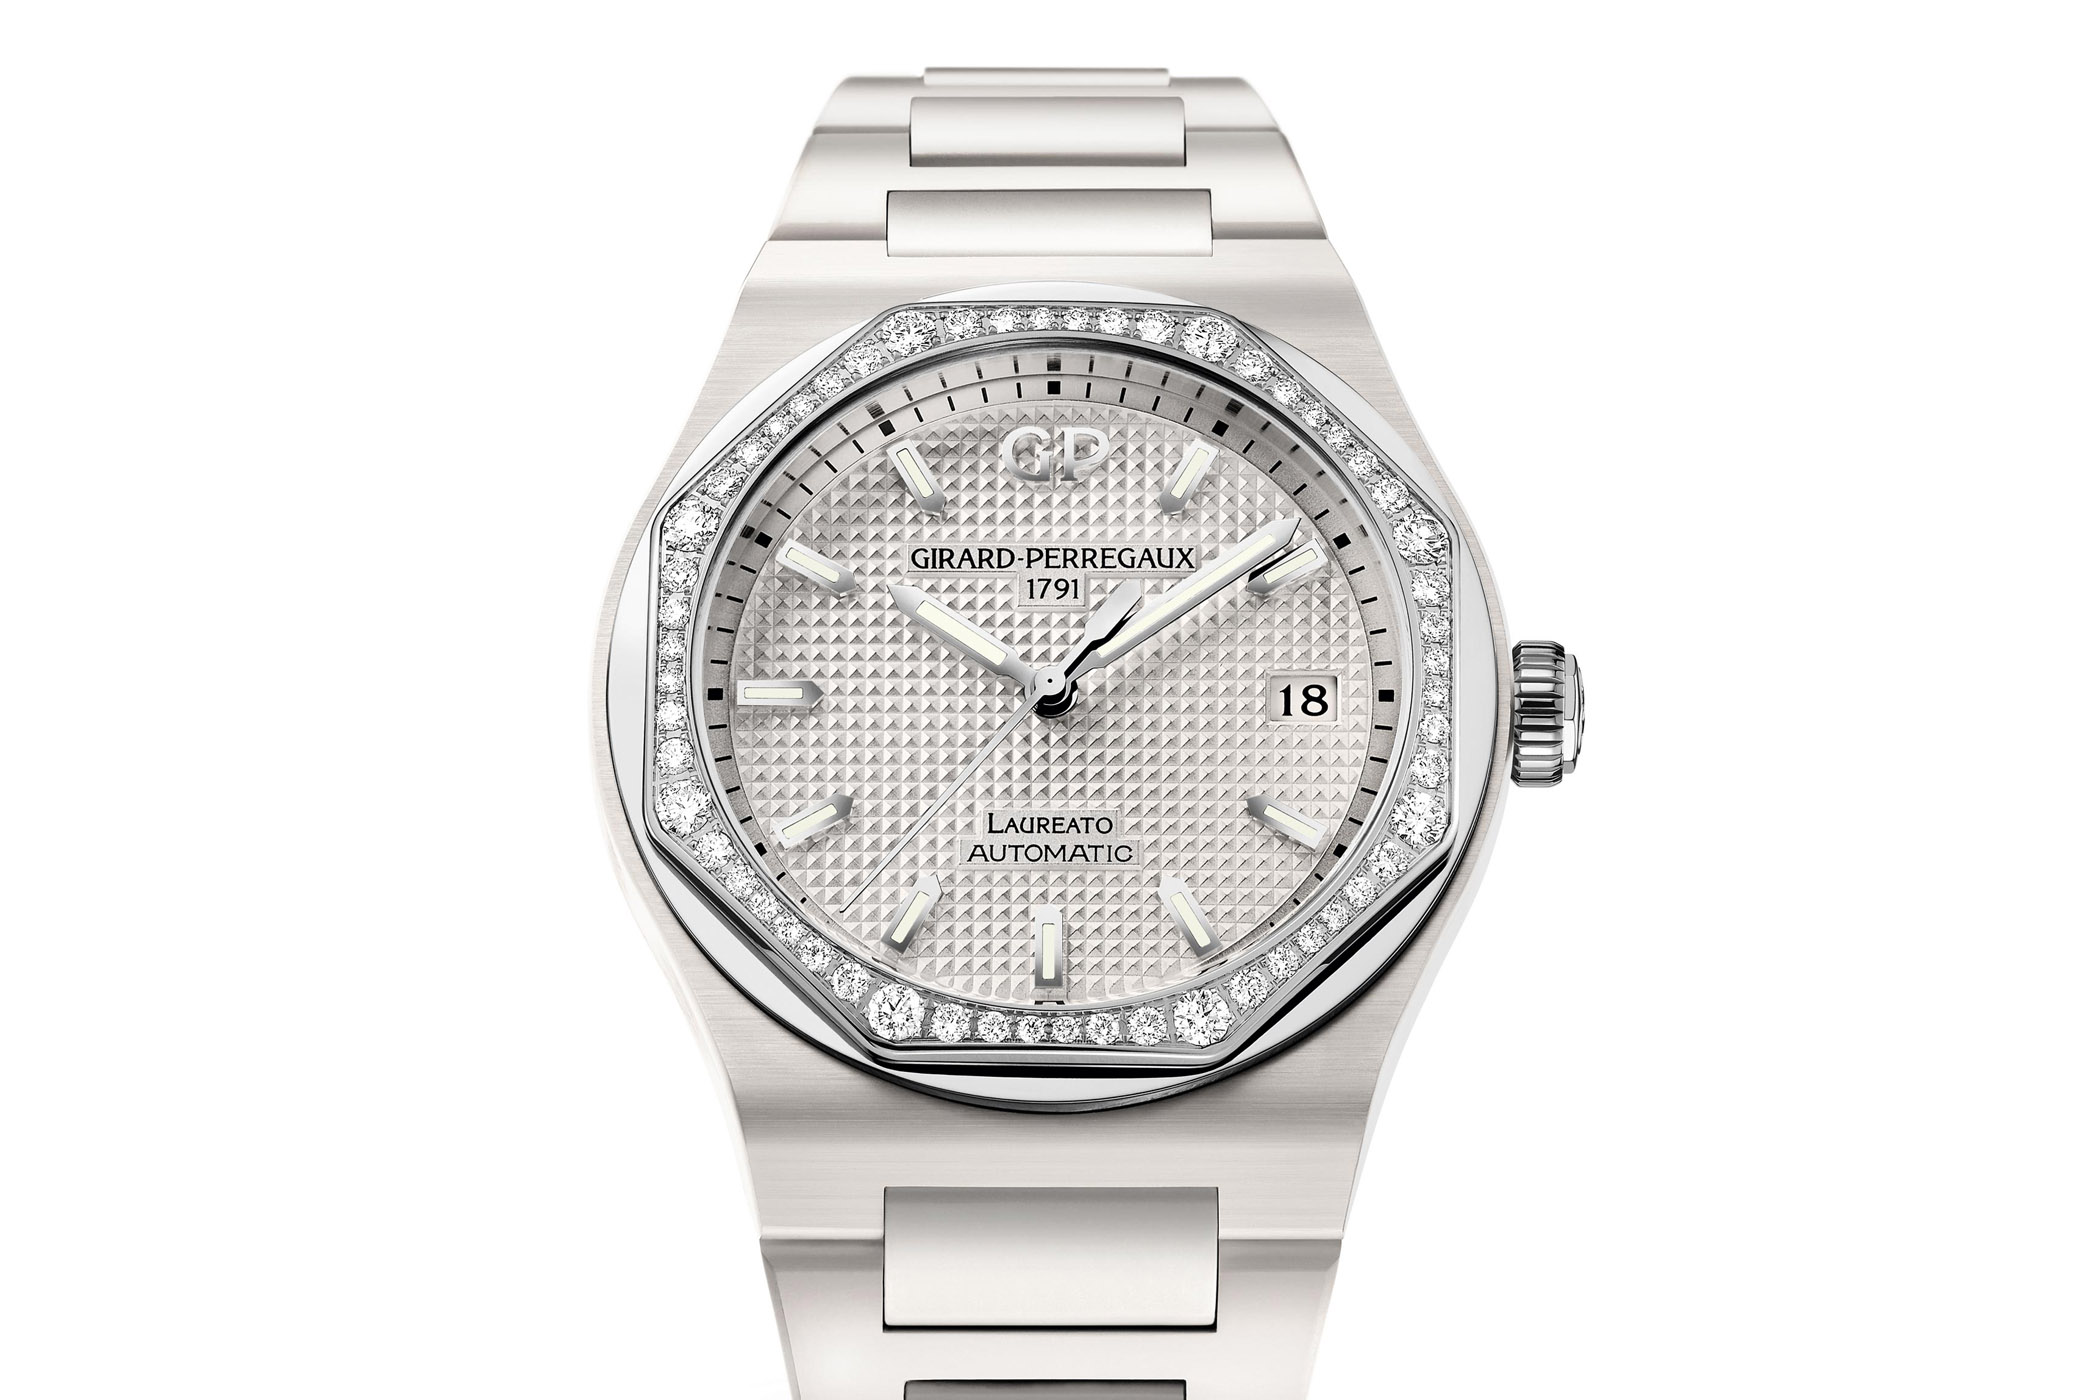 Girard Perregaux Laureato 38mm White Ceramic - SIHH 2018